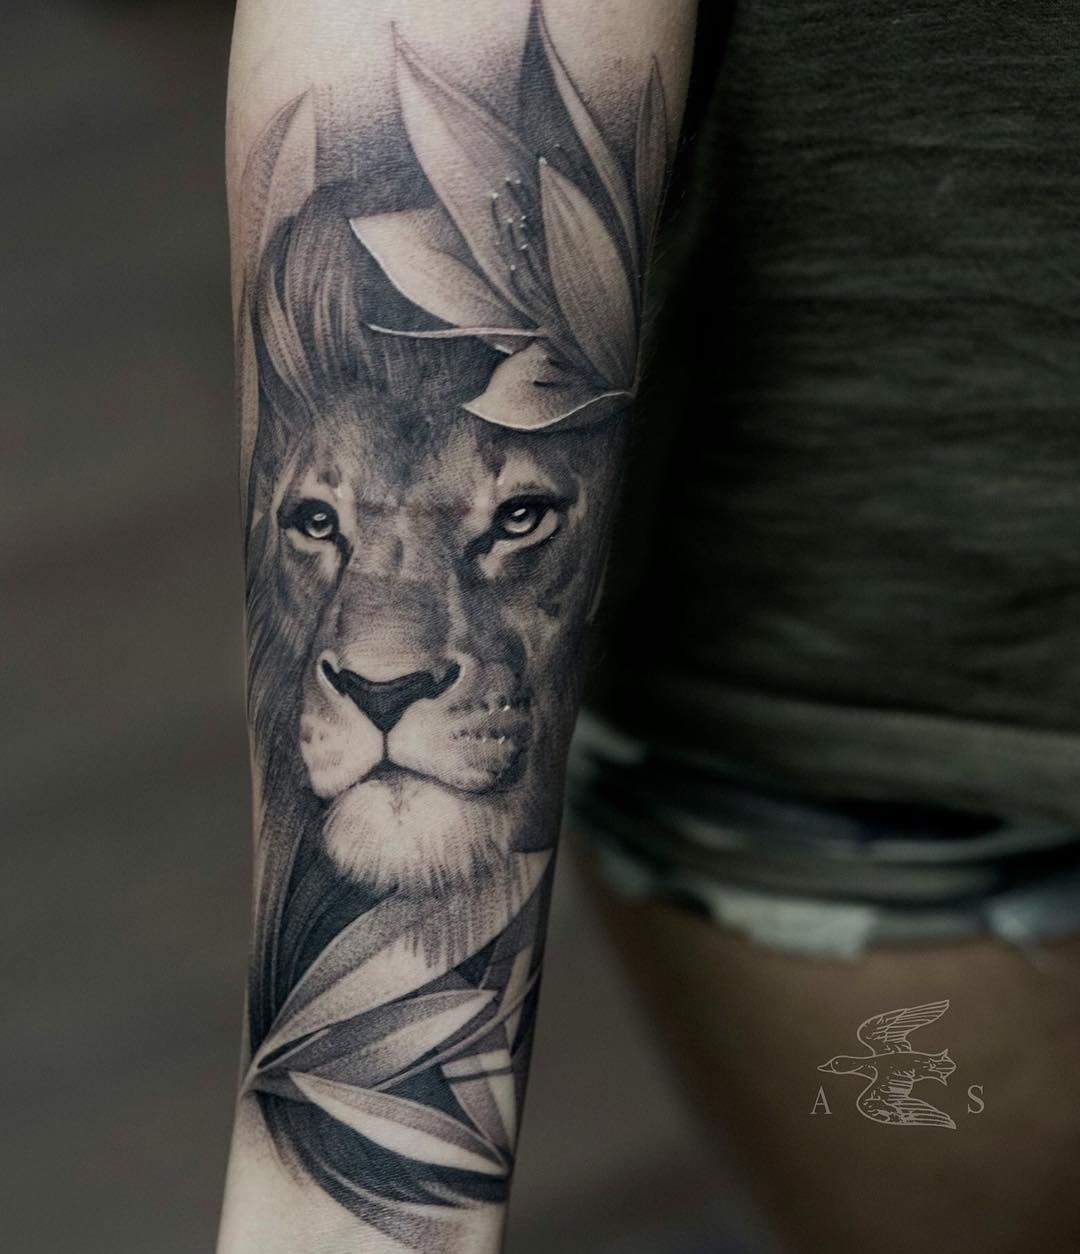 78 Lion Tattoo Ideas Which You Like December 2020 Lion Tattoo Plant Tattoo Animal Tattoos